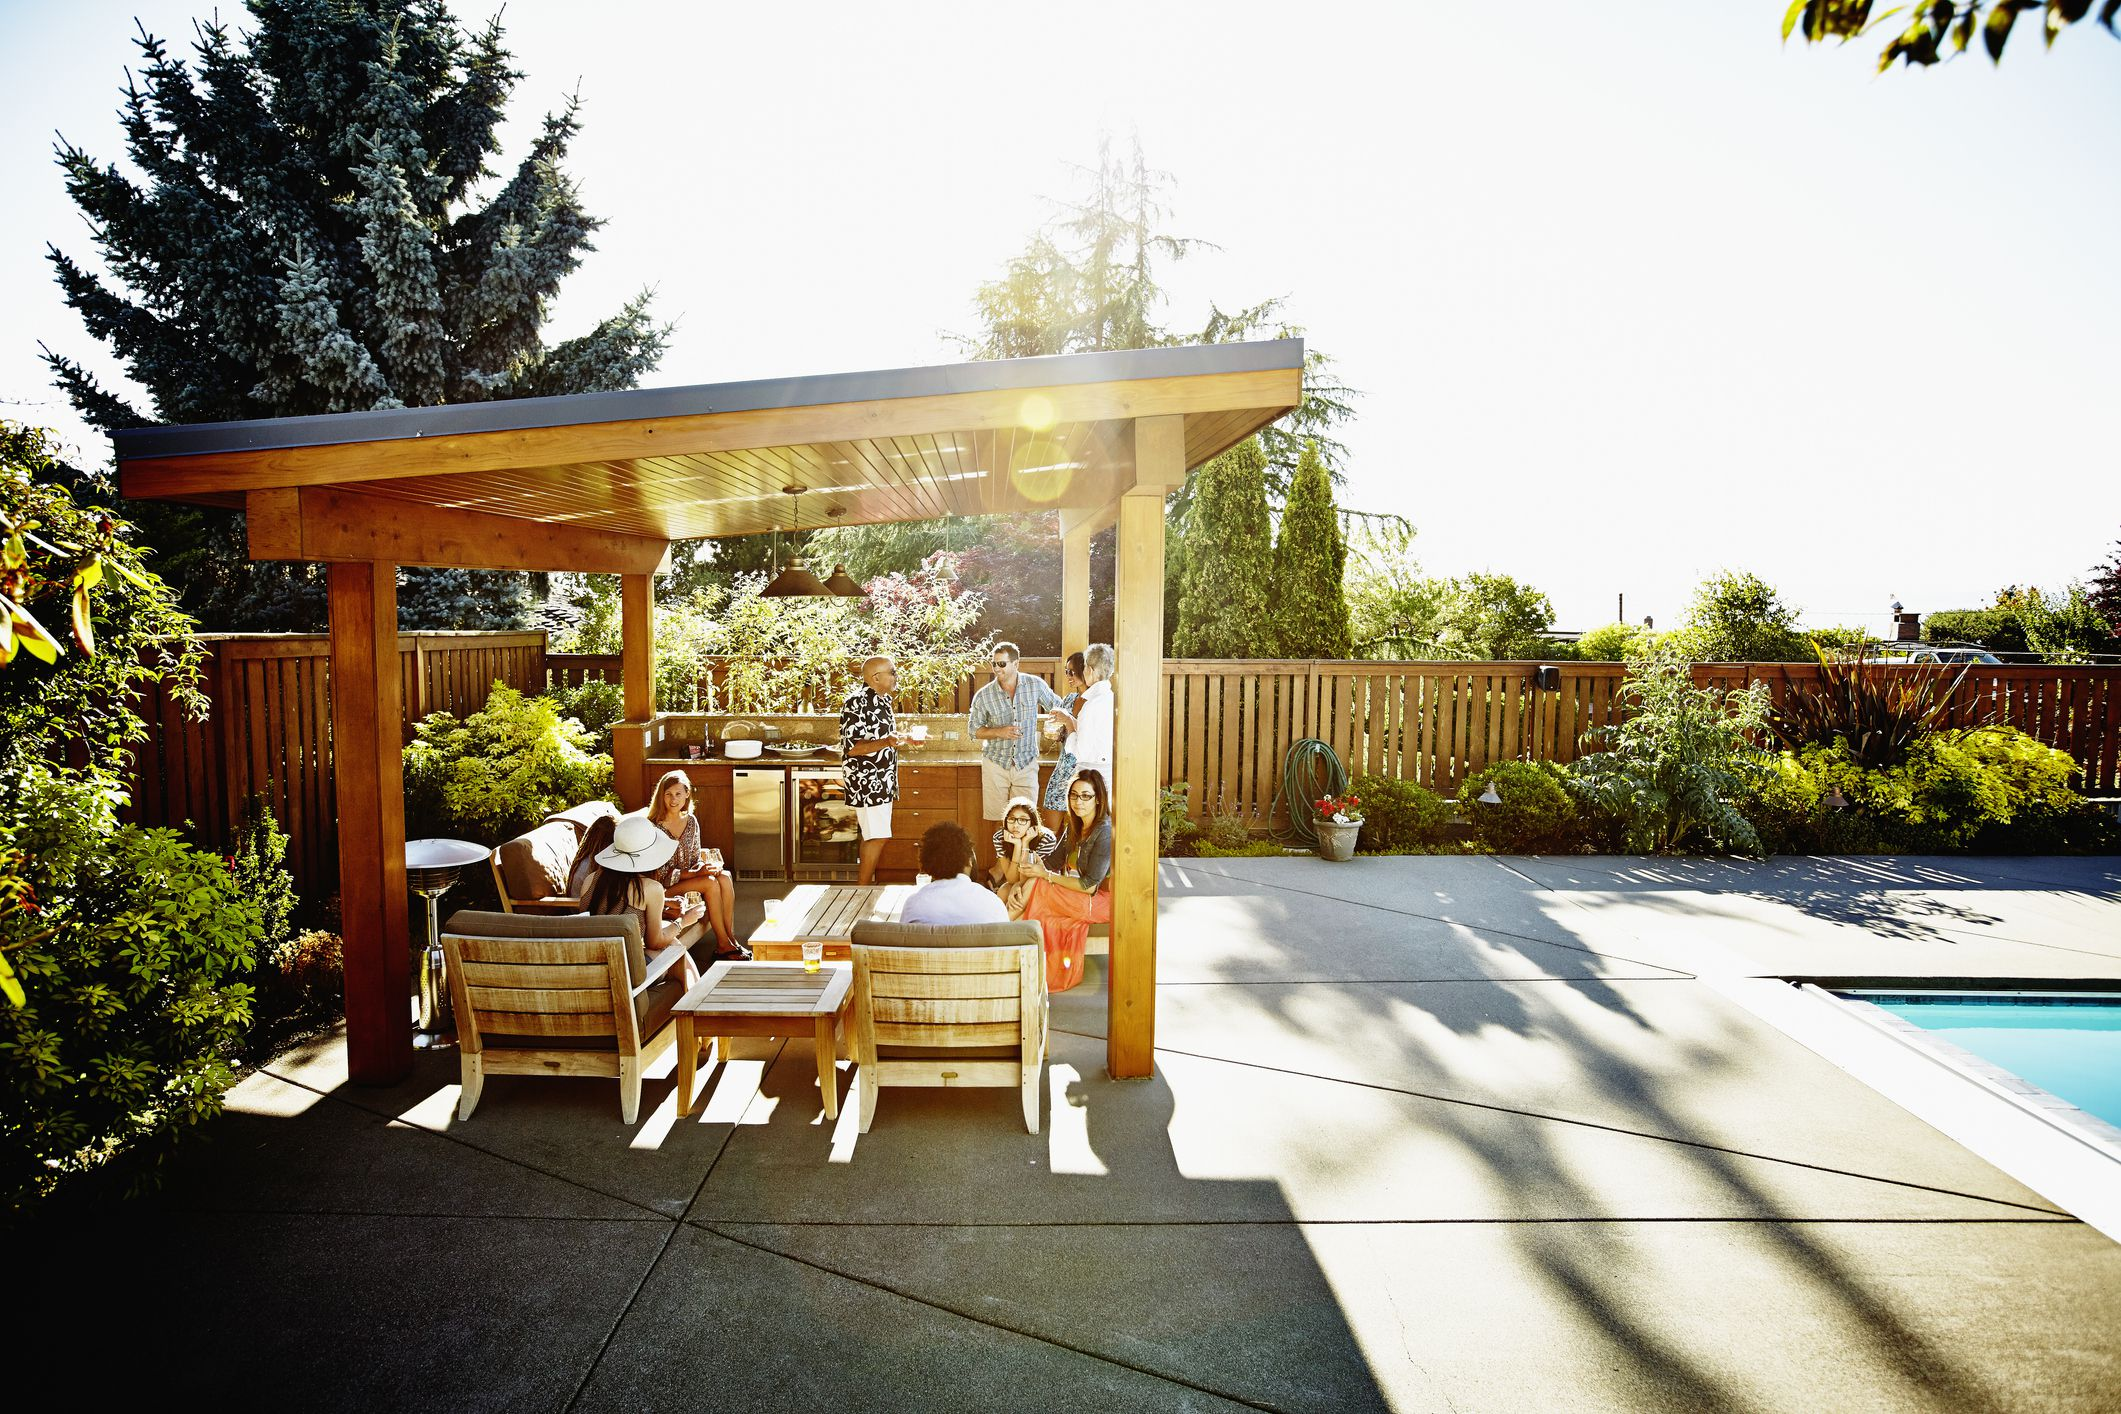 How Much Does a DIY Pergola Cost?